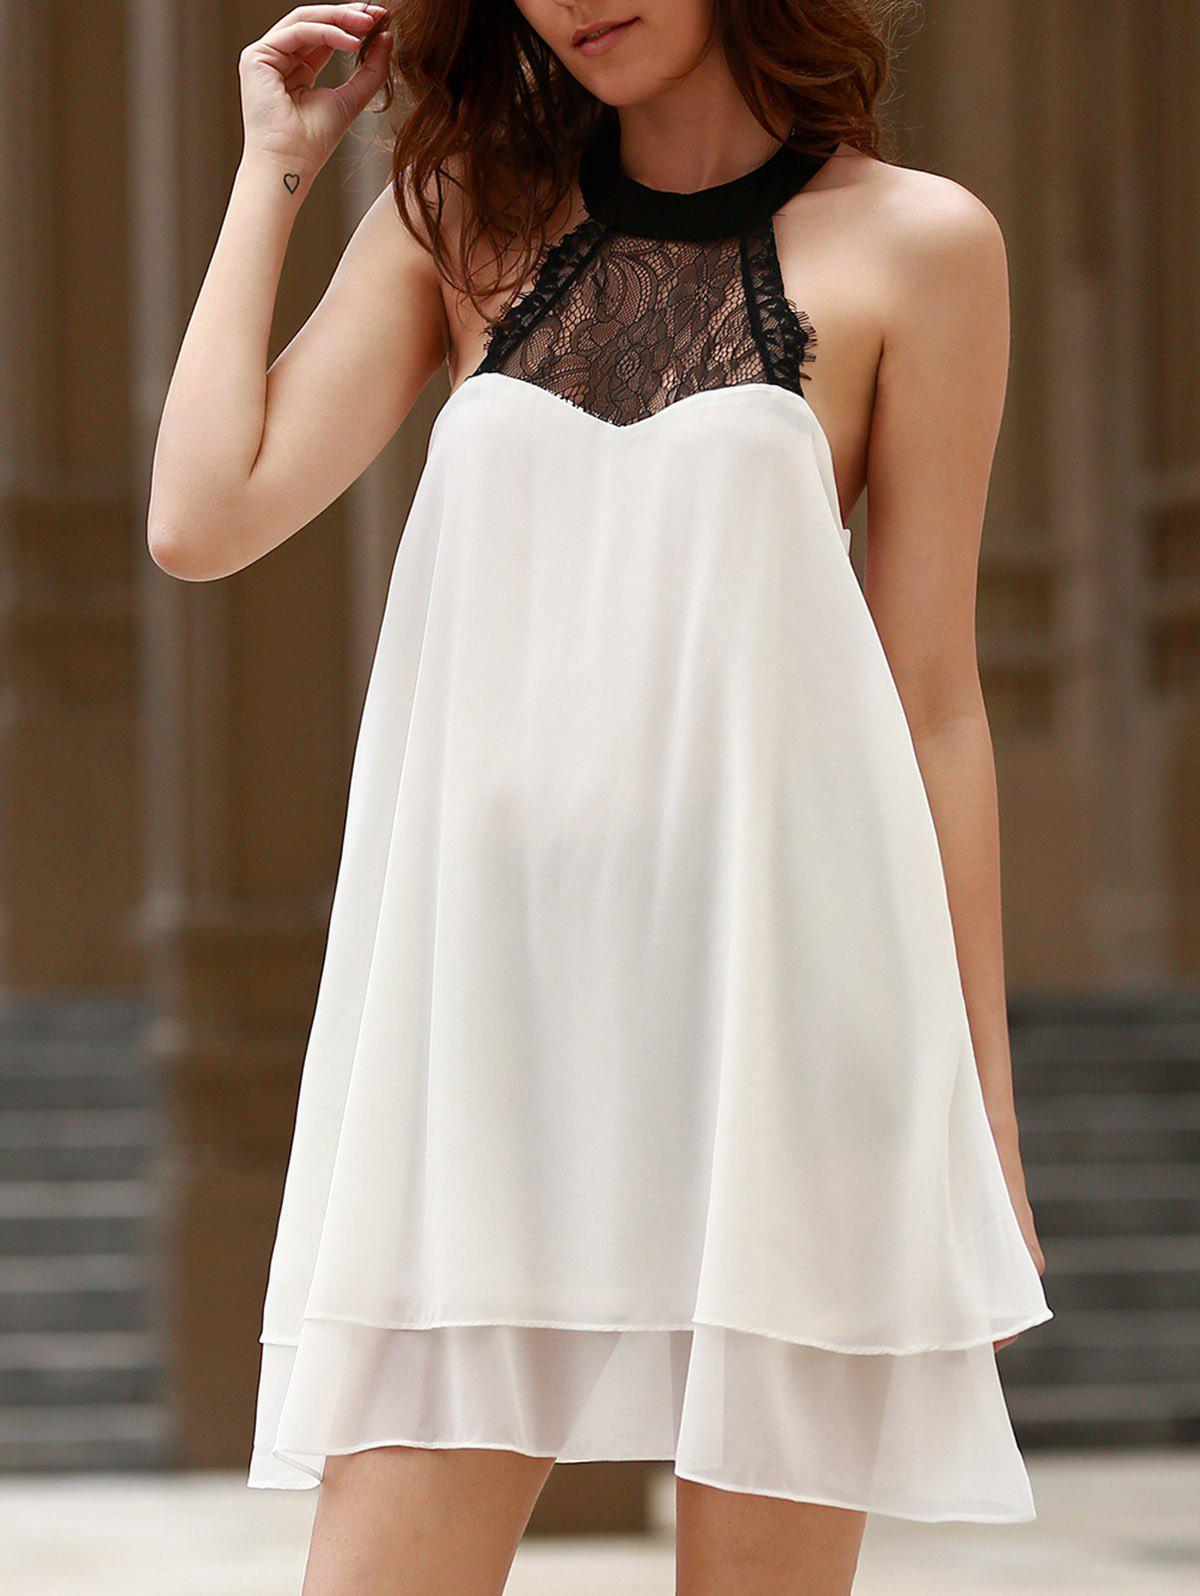 Stand Collar Dress Designs : Sexy stand up collar sleeveless lace spliced bowknot